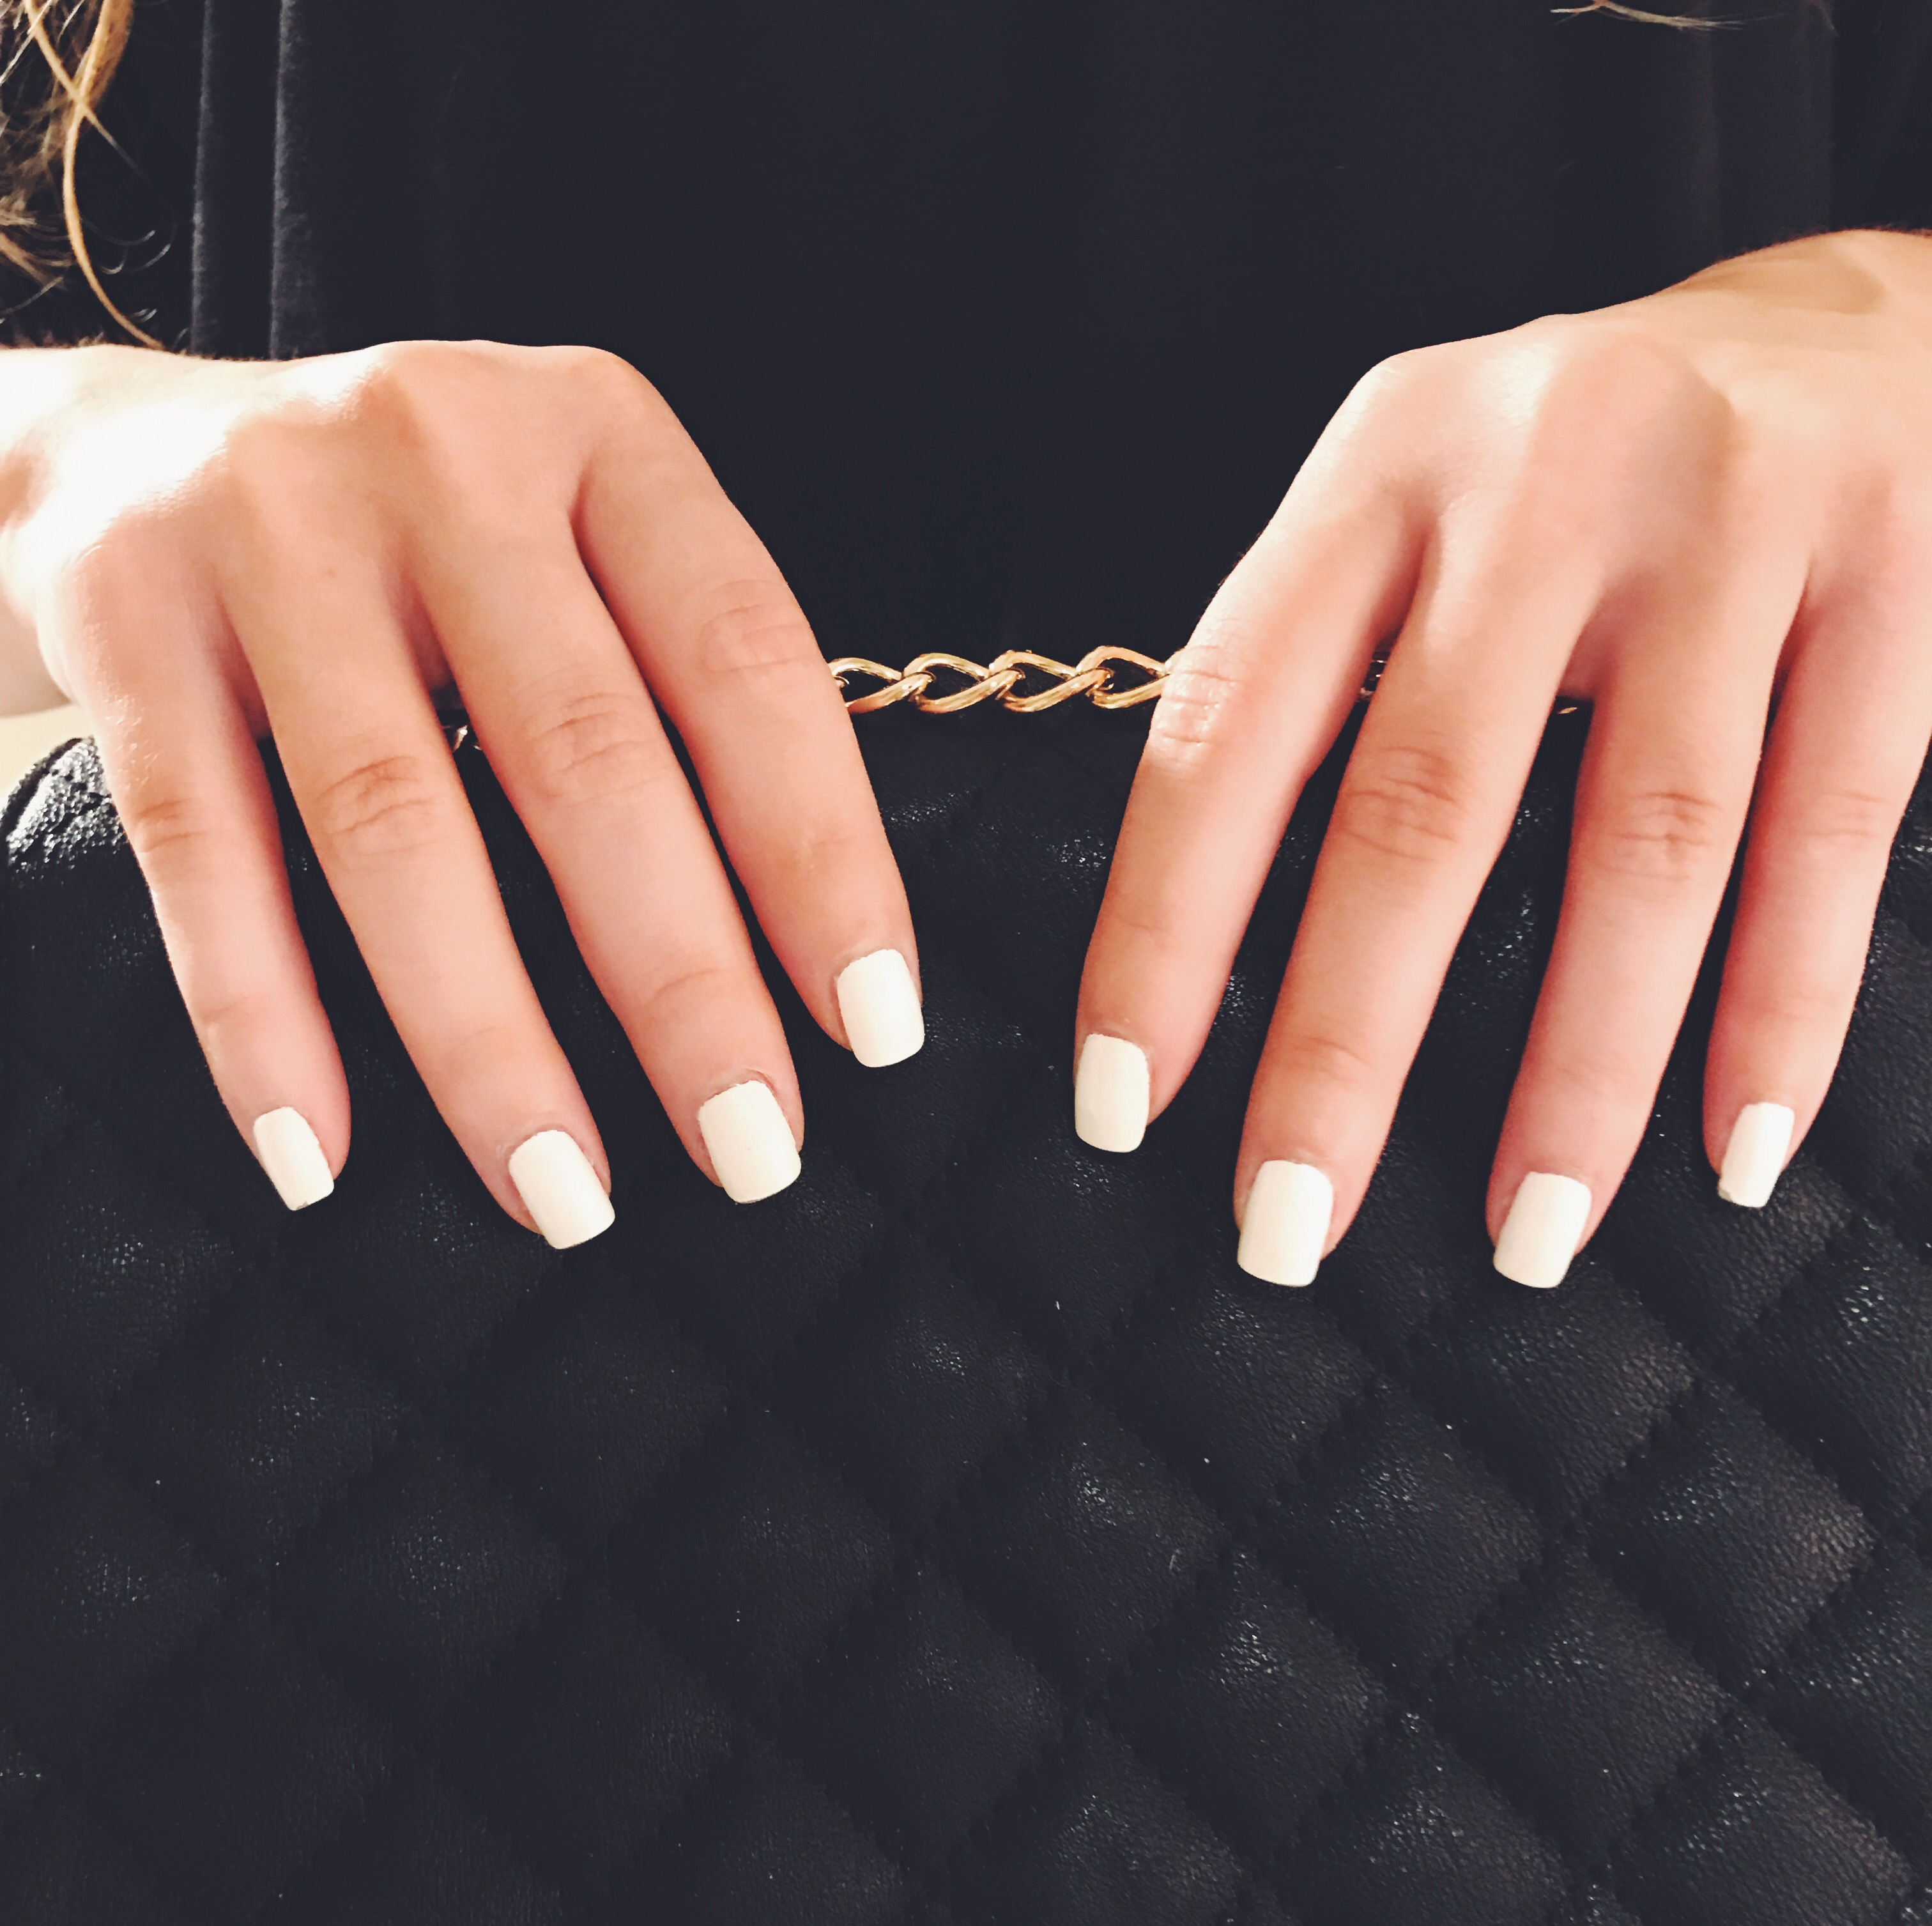 How to Grow & Keep Your Nails Long, Strong & Healthy! – Tay Tay Rosé